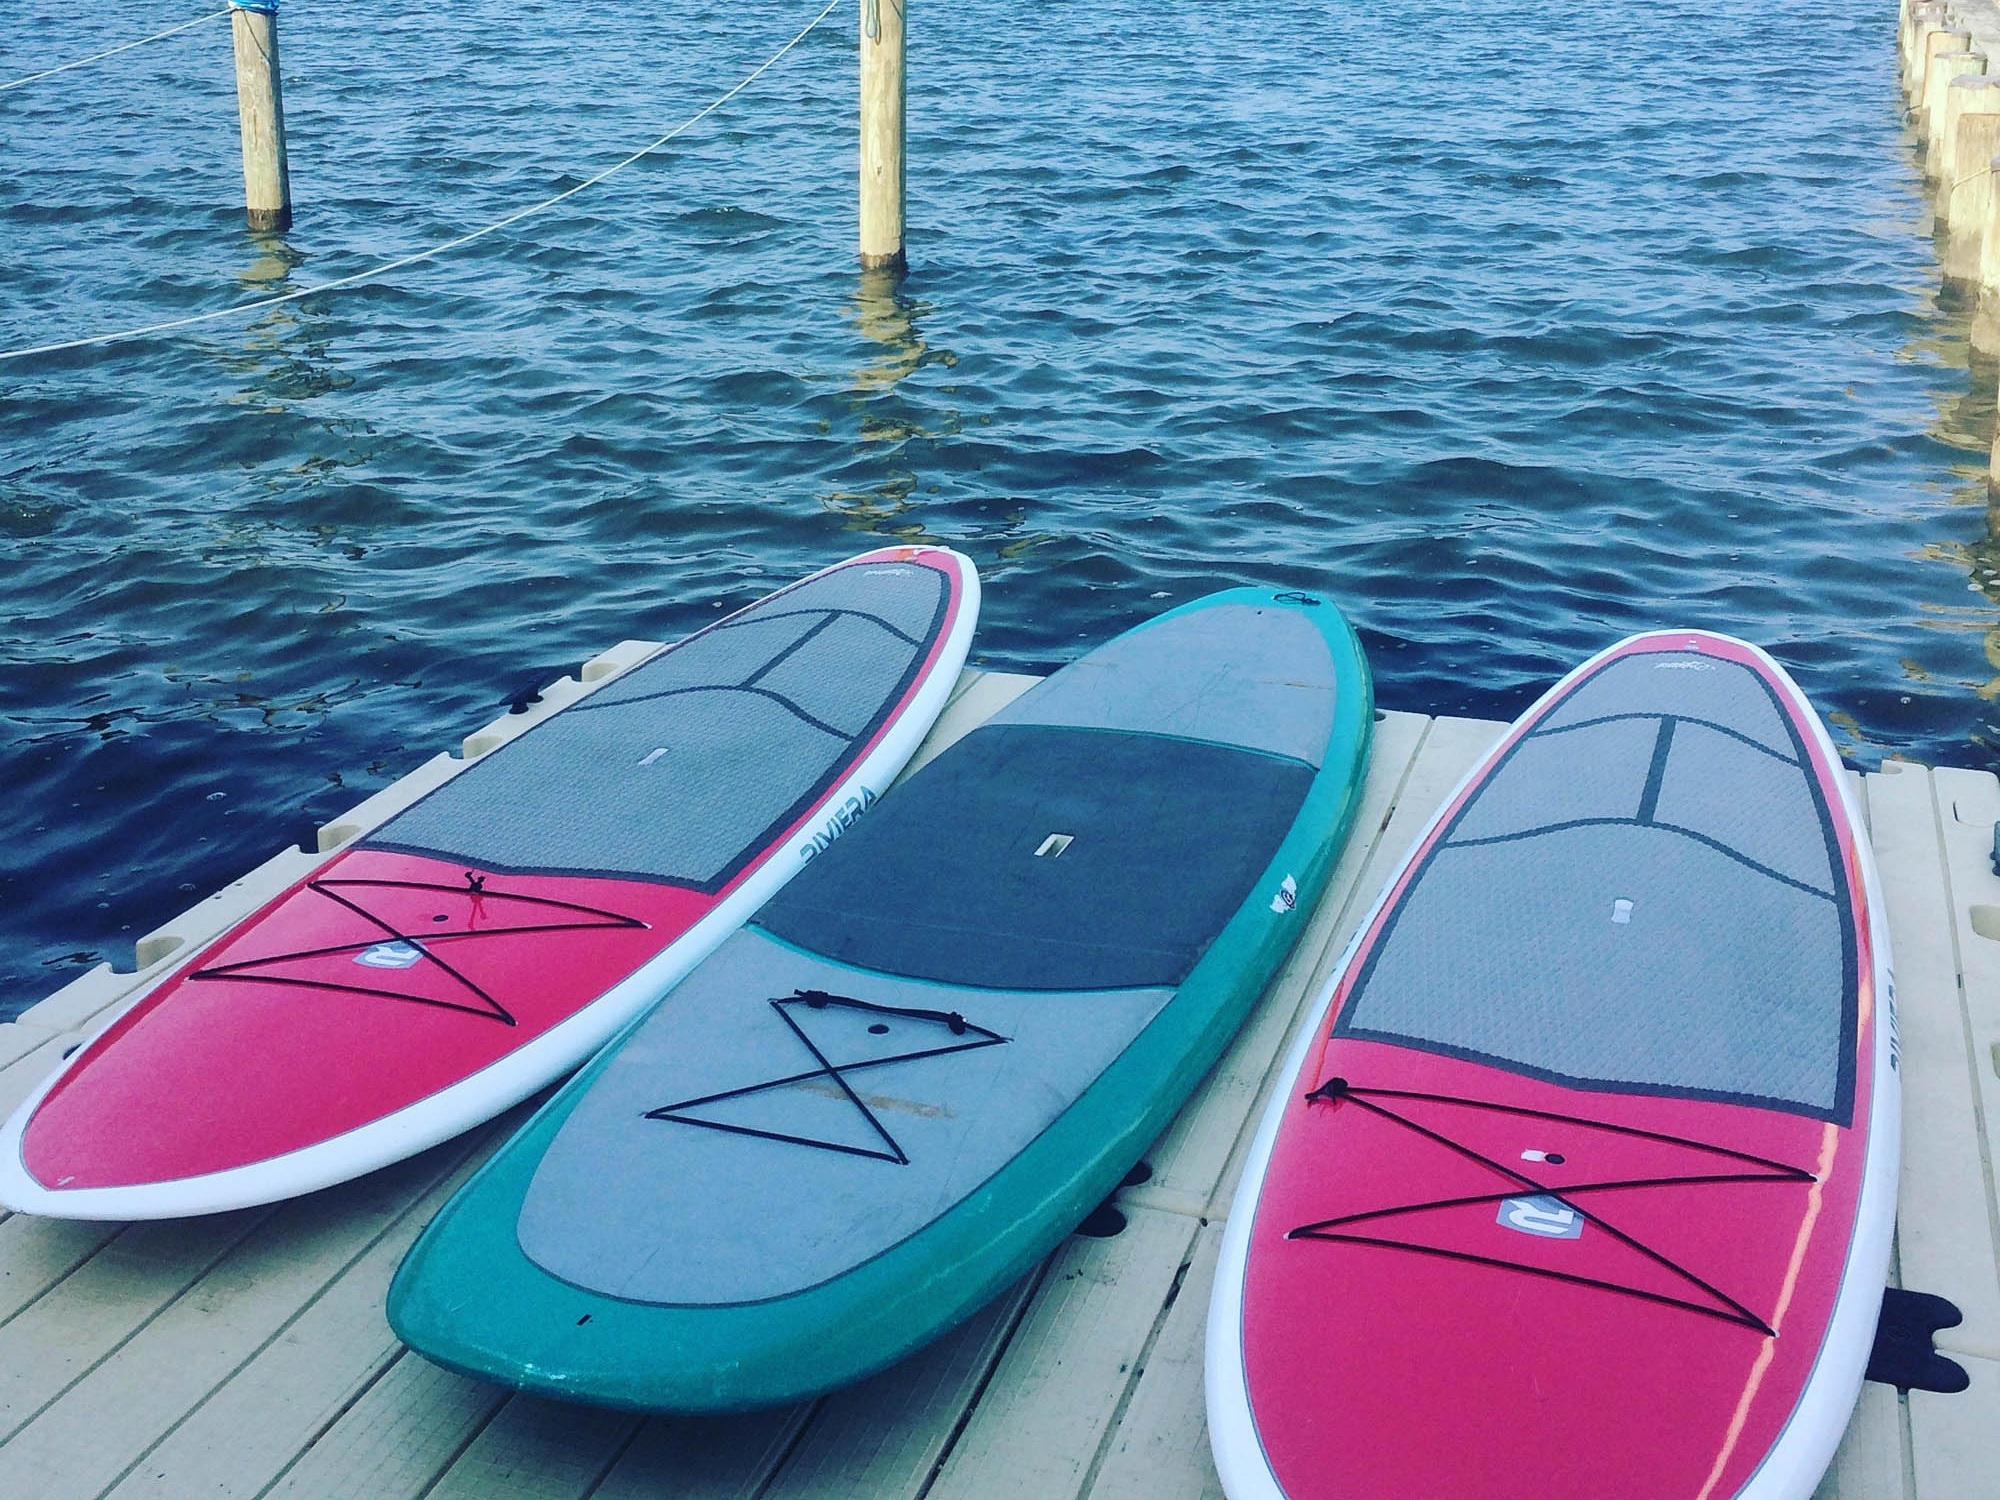 Stand Up Paddleboards - 1hr/$20 - 2hr/$30 - HalfDay/$40 - FullDay/$55 - Week/$125